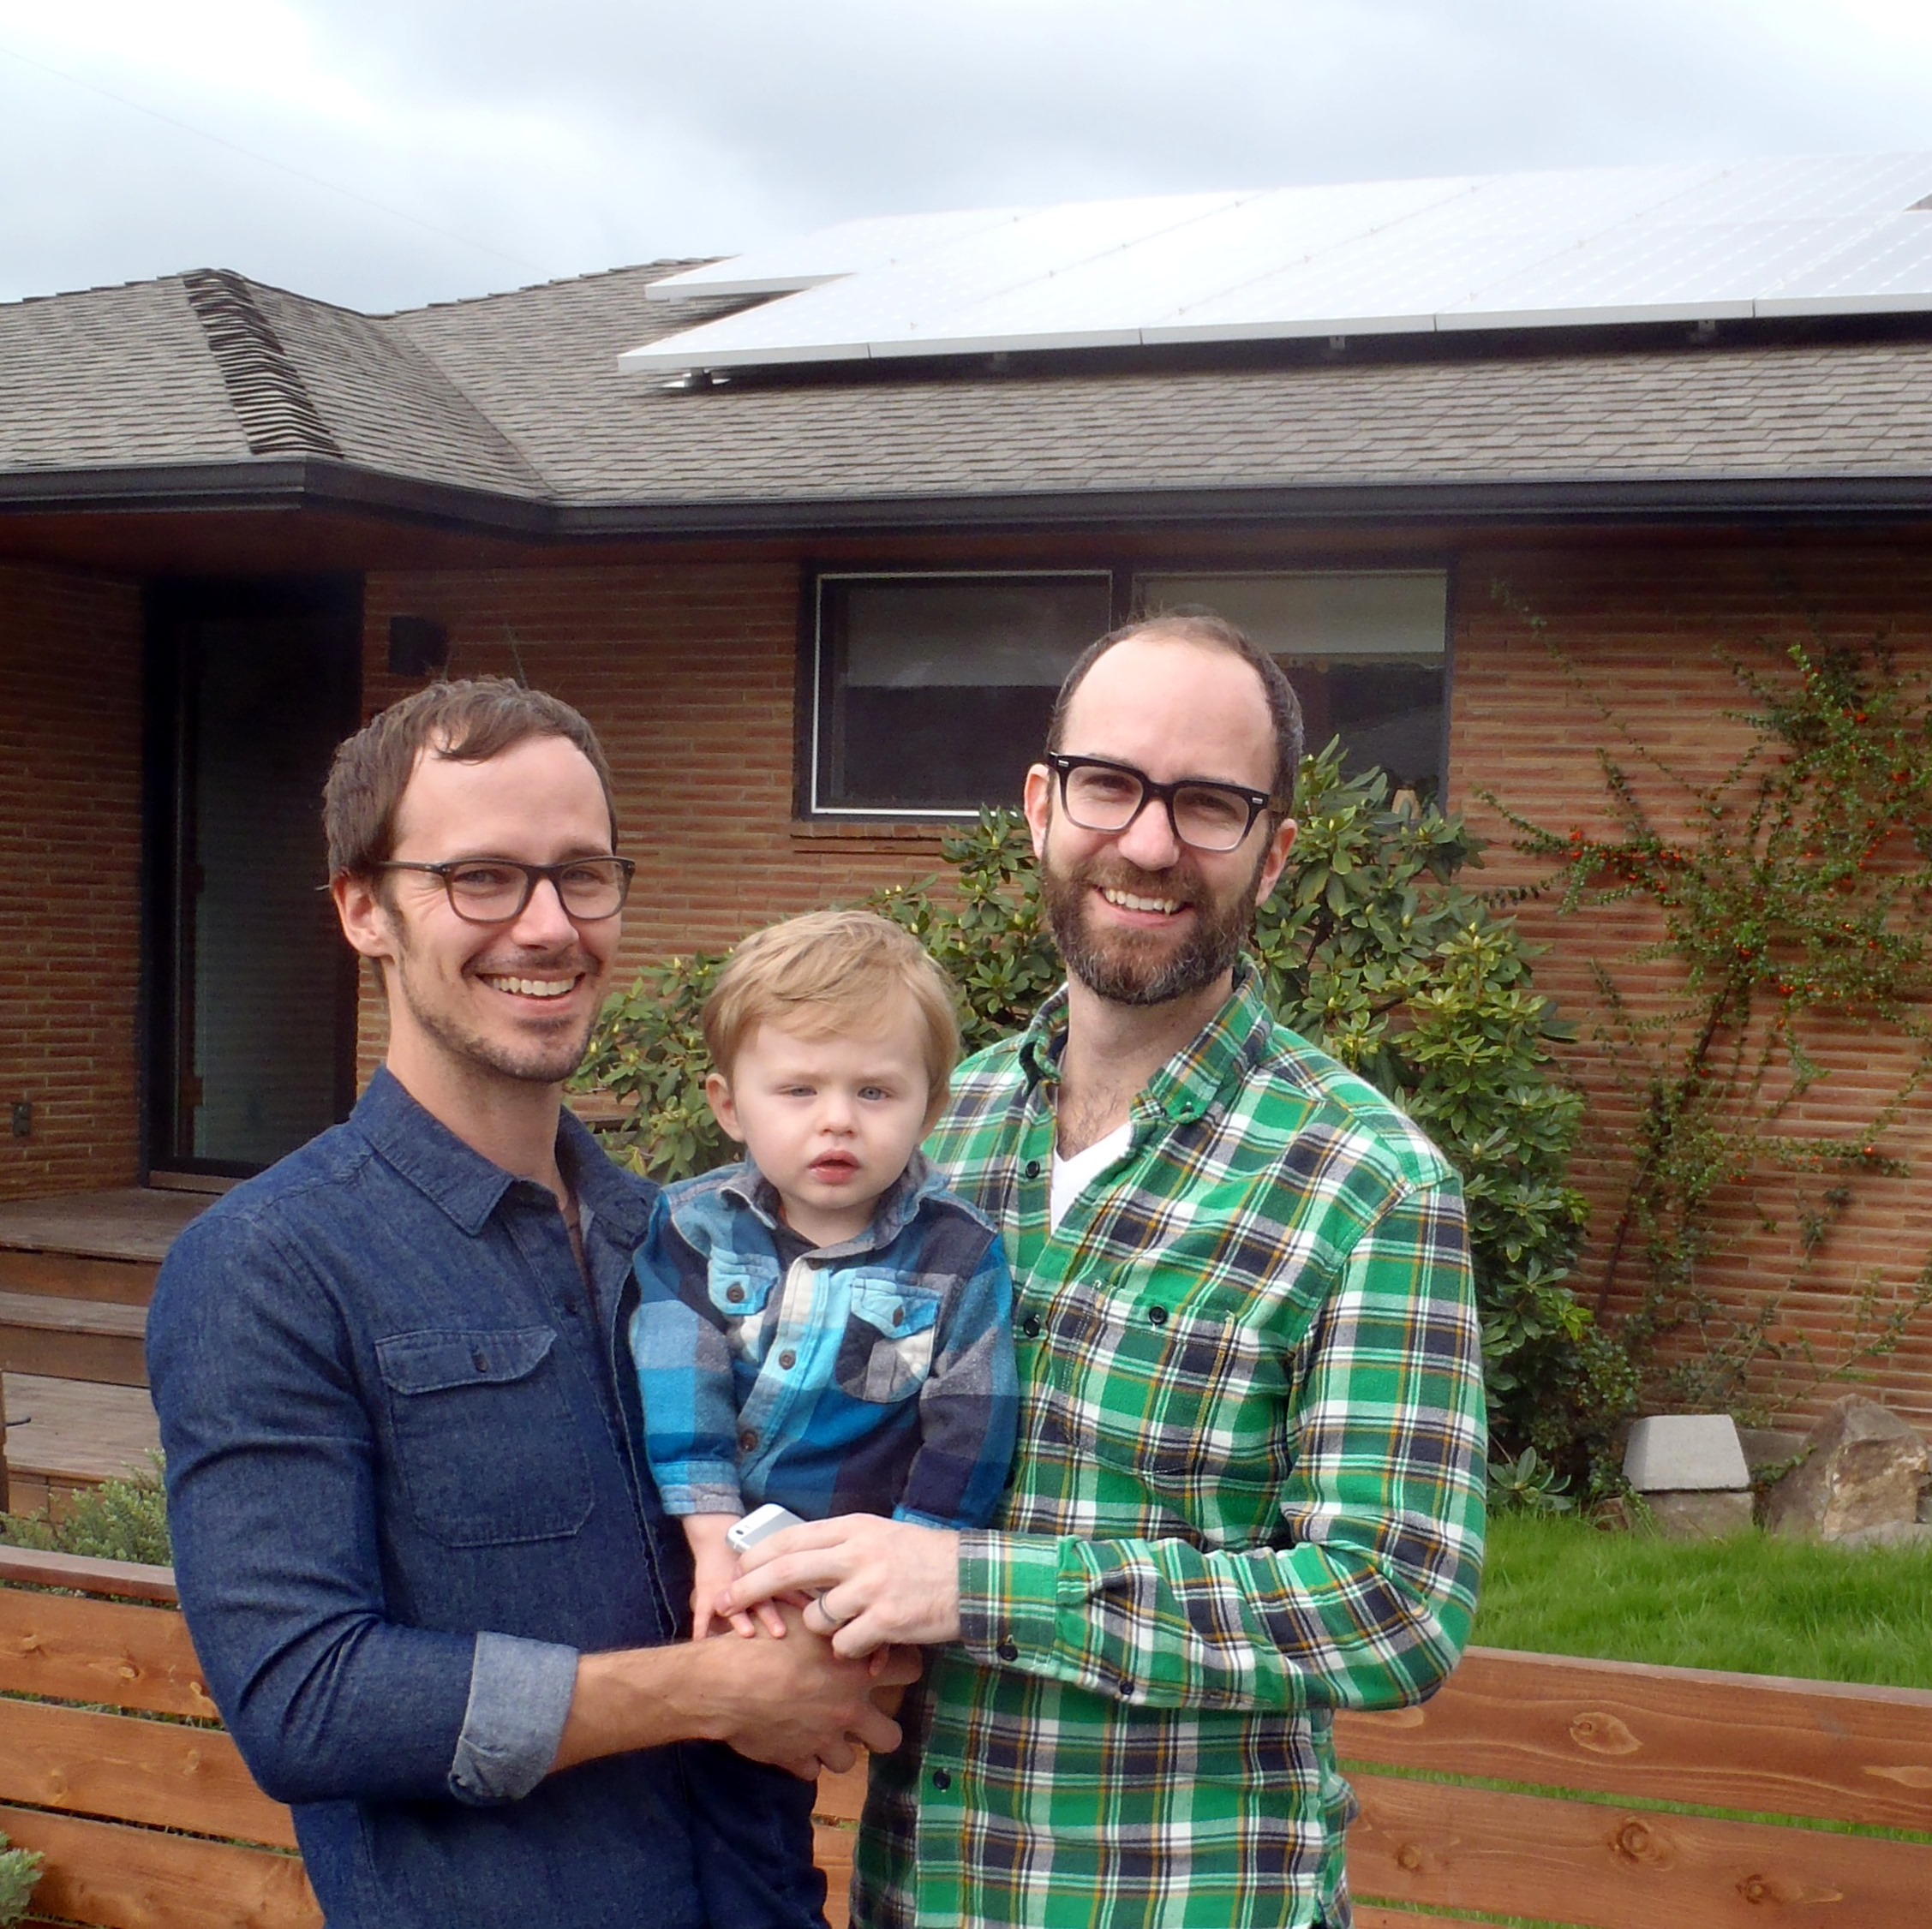 Stephen and Dooley with child standing in front of their home